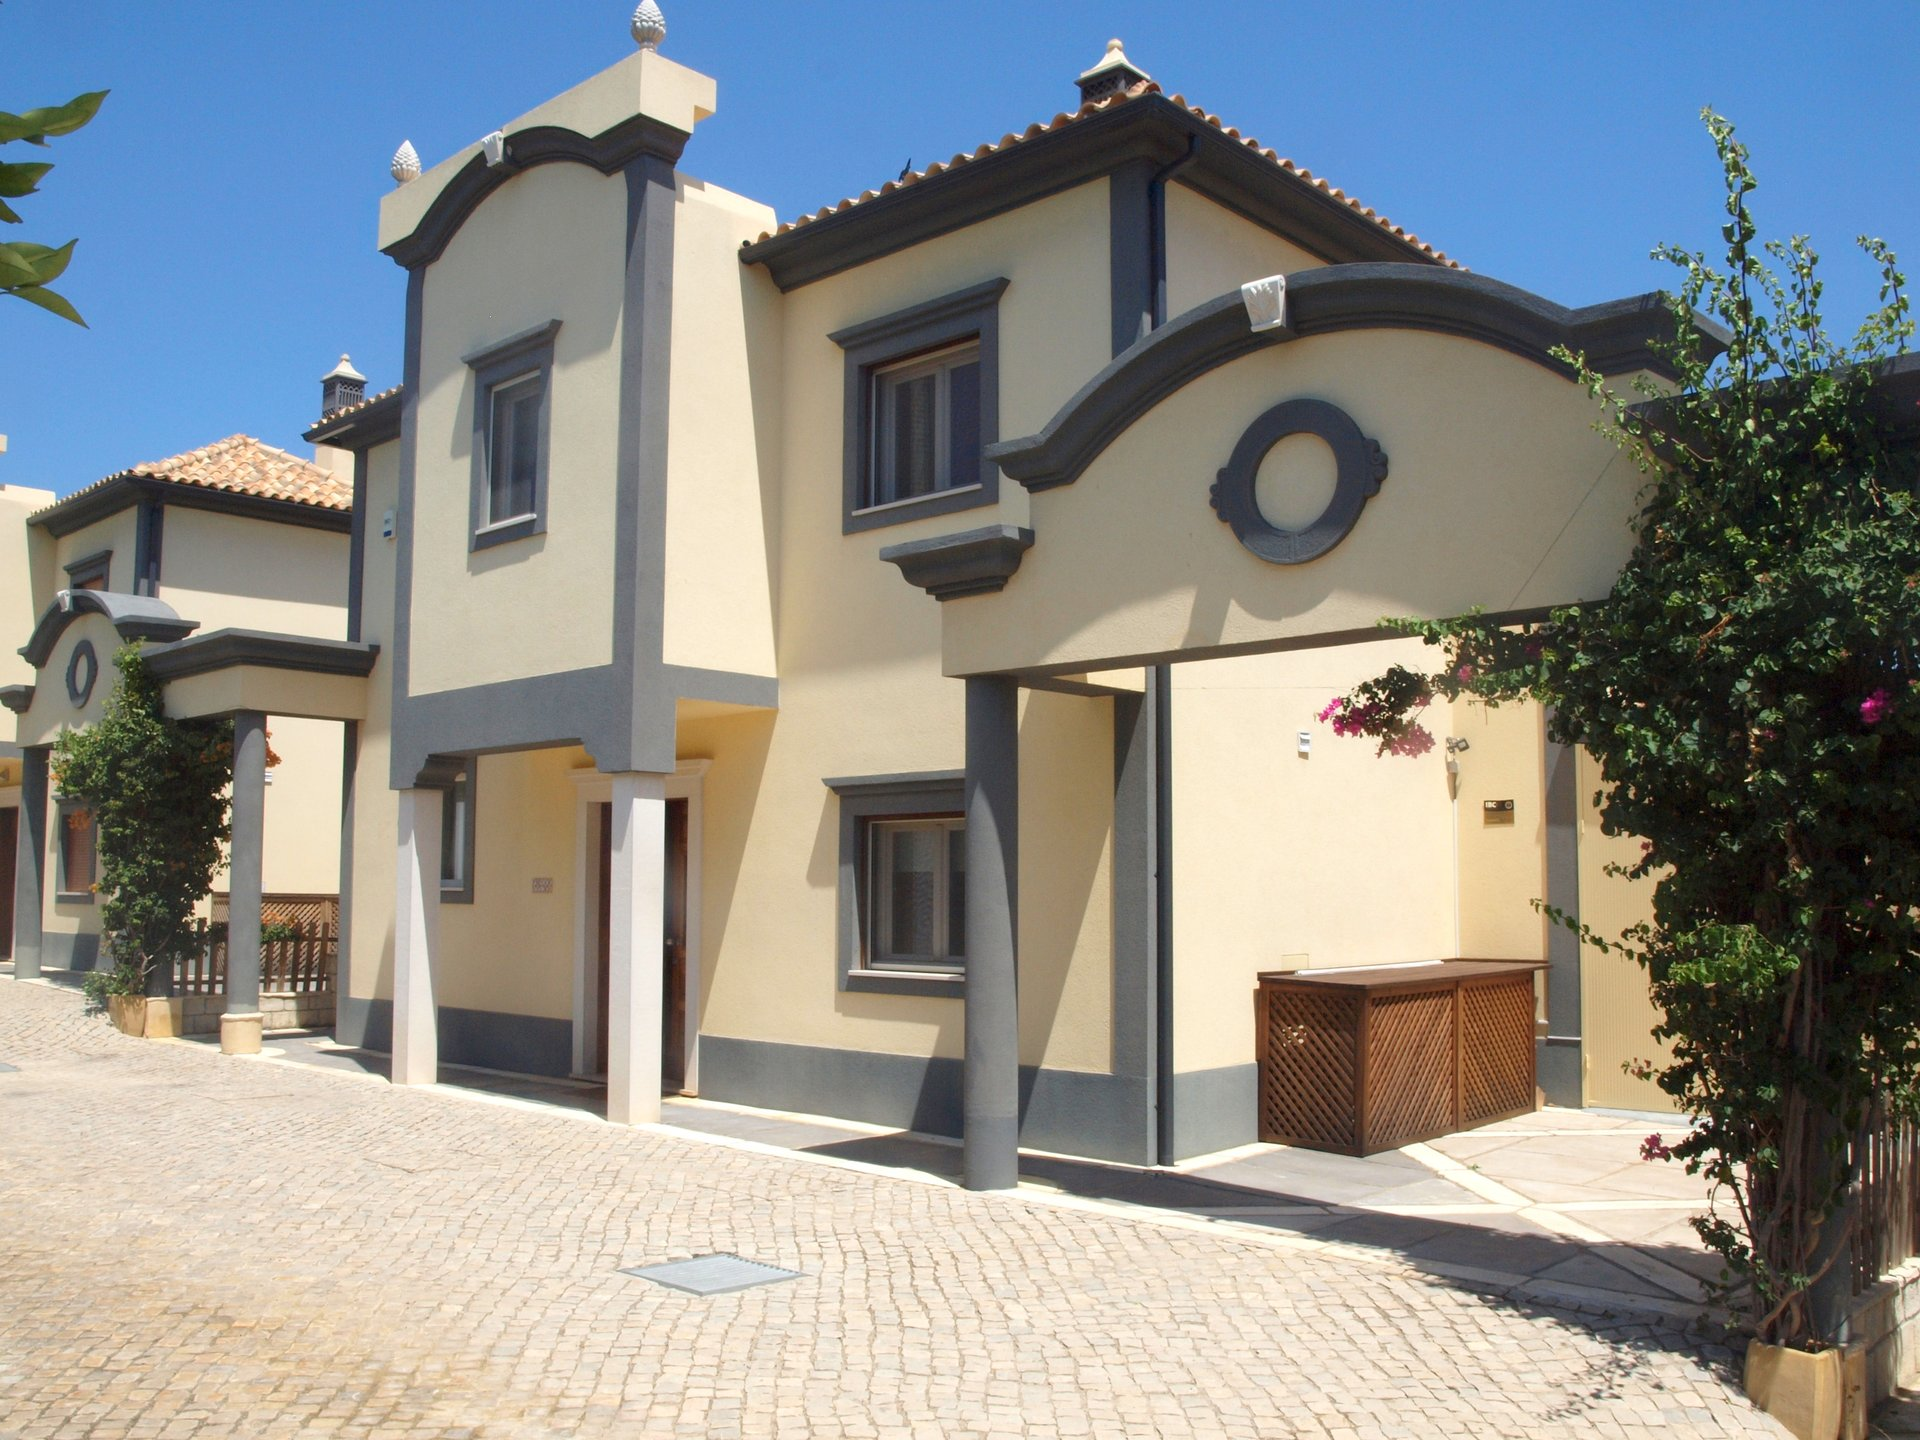 4 Bedroom Villa Almancil, Central Algarve Ref: RV5457